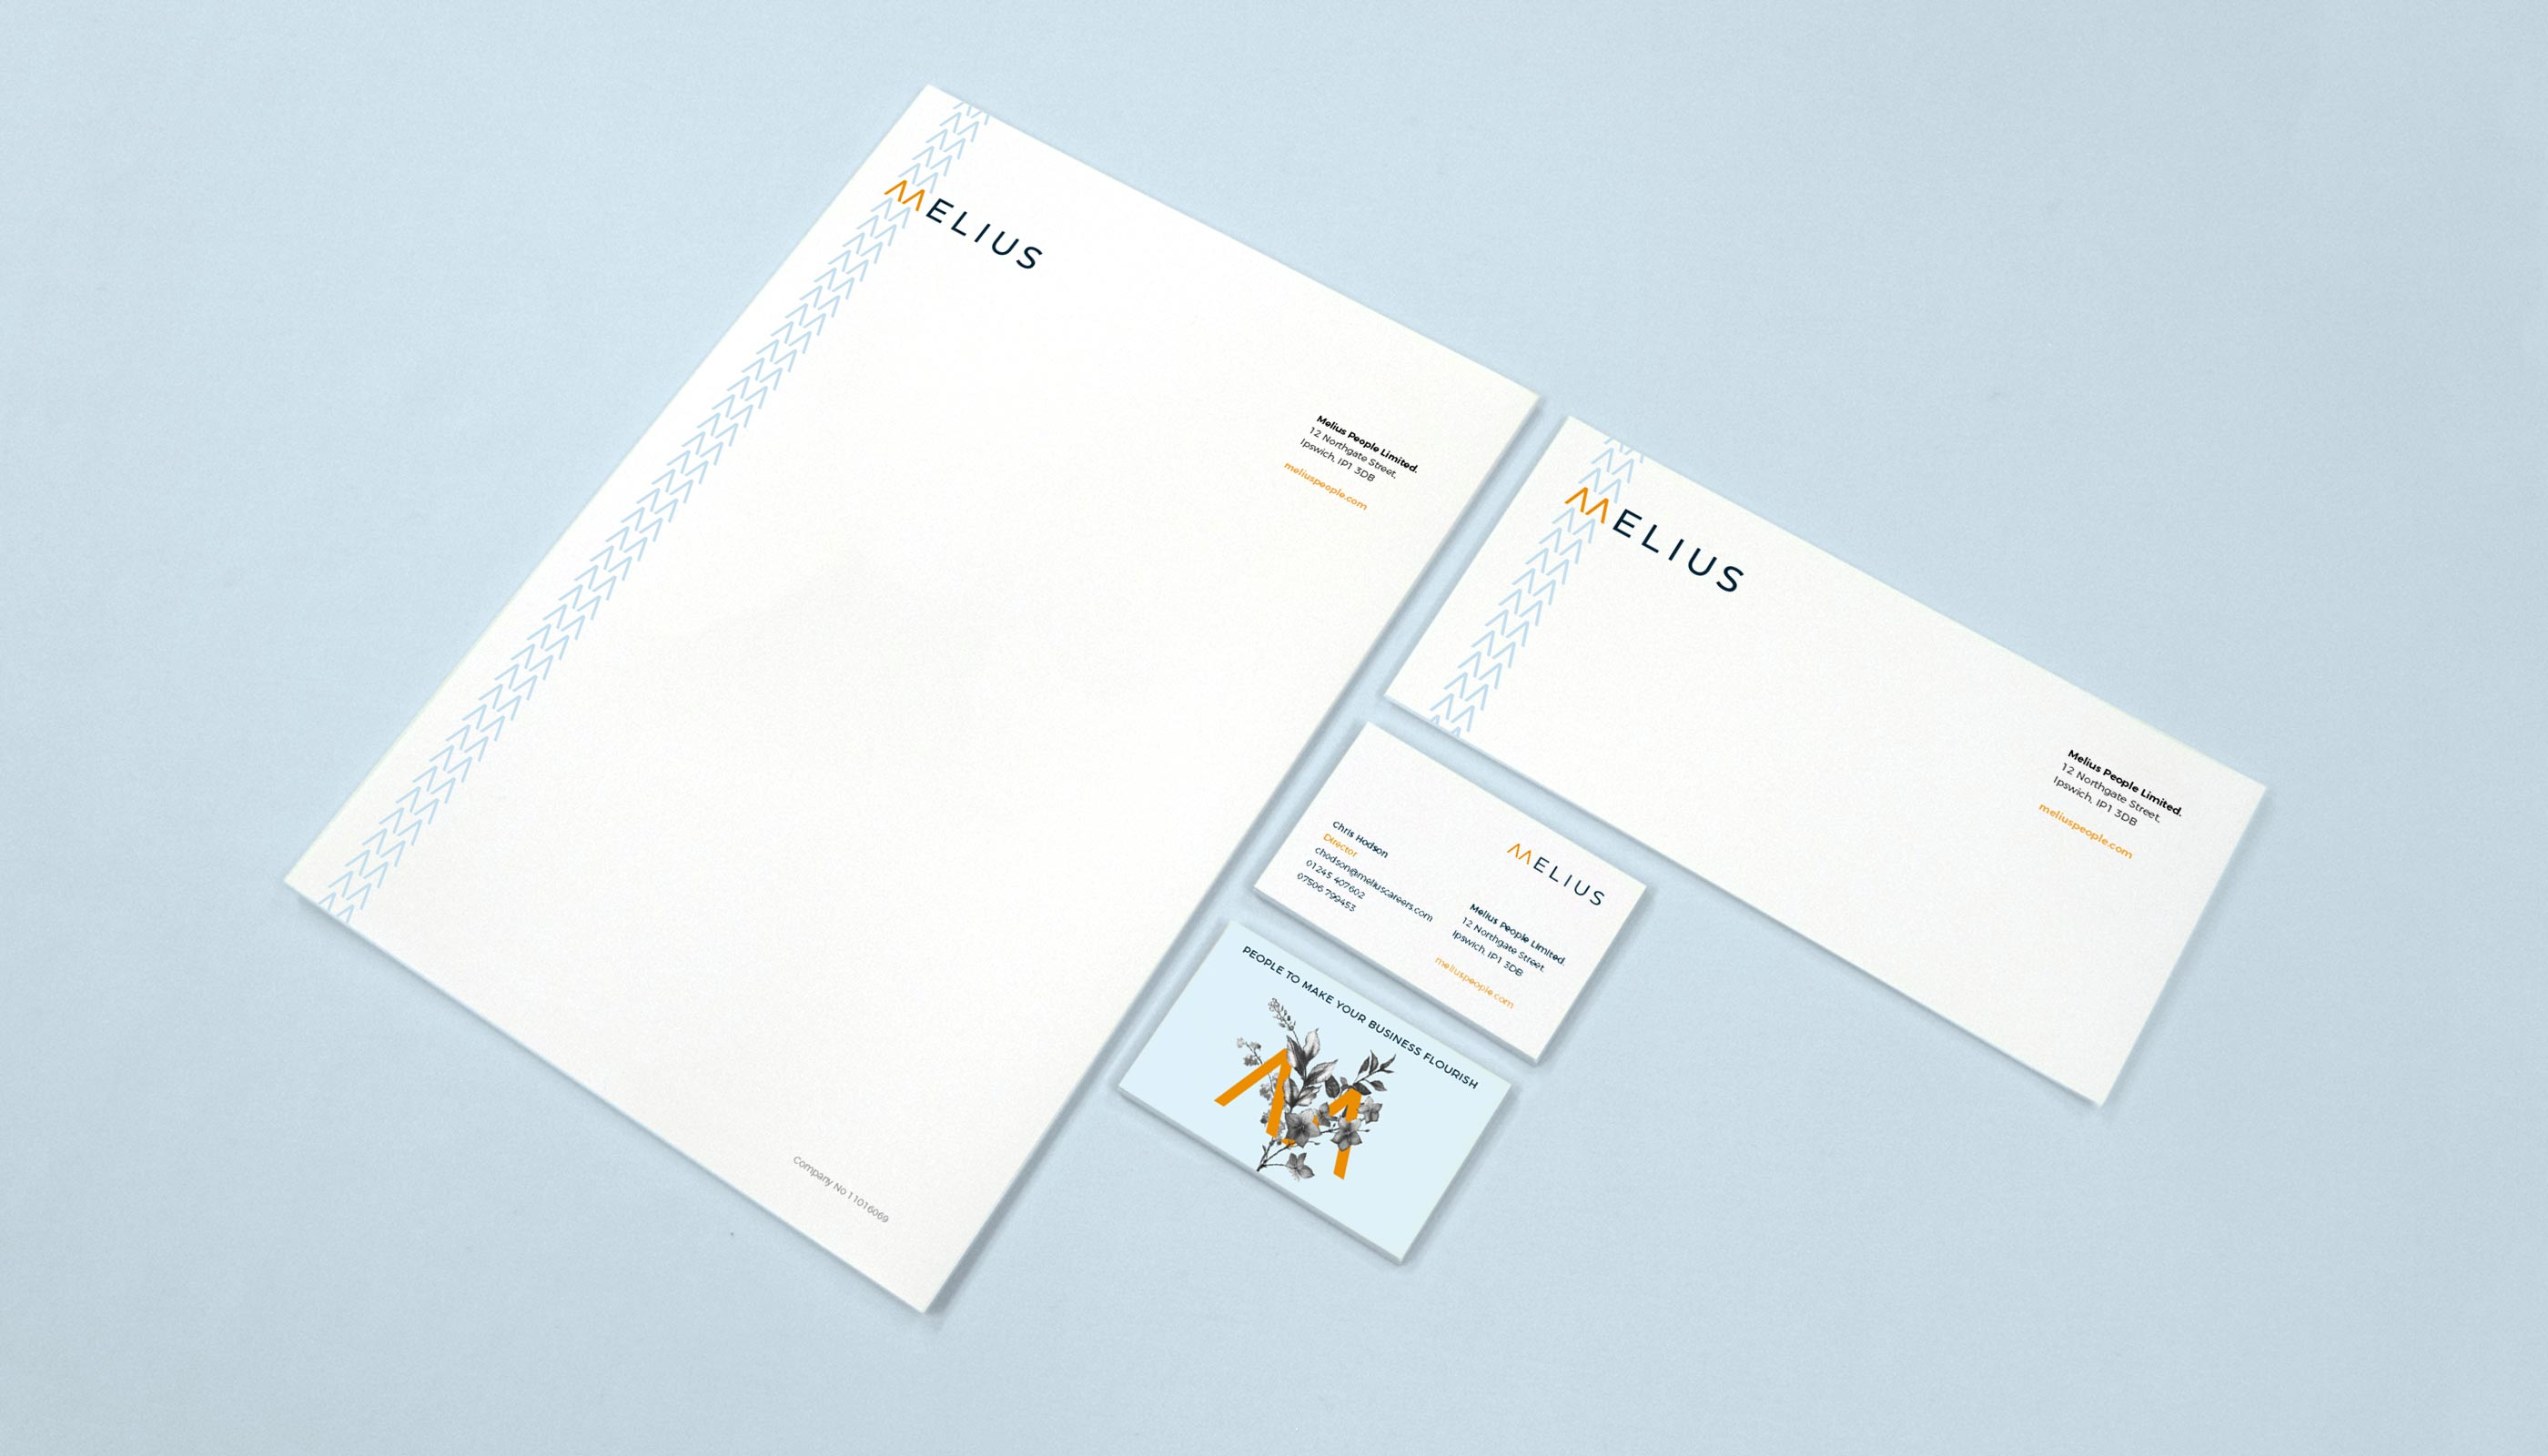 Stationery design for Melius in Ipswich, Suffolk.